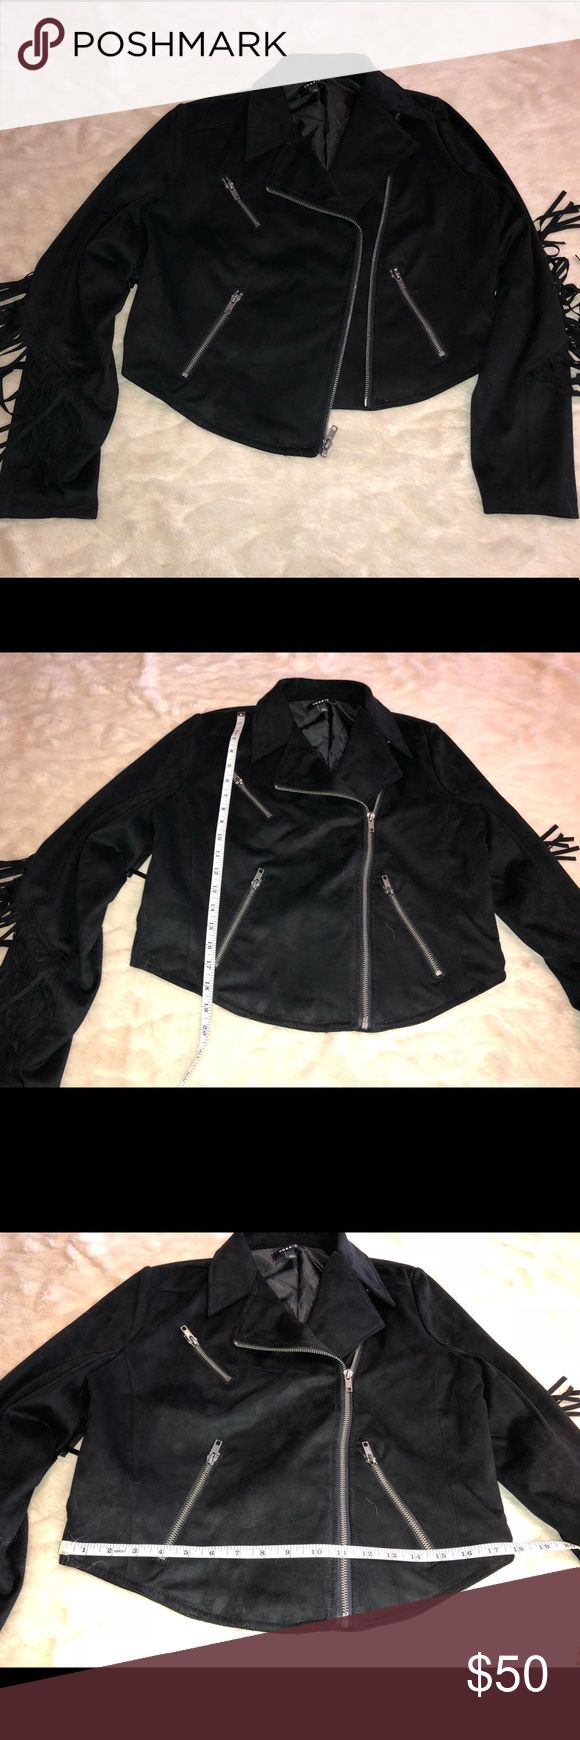 NWOT torrid black faux suede fringe jacket plus 00 NWOT Black faux suede fringe cropped moto jacket from Torrid plus size 00. I lost a lot of weight and by the time the season came to wear it it was too big for me. All items come from smoke free home. 🐺Husky friendly environment. All items are kept in plastic containers, but shed happens 😊 torrid Jackets & Coats